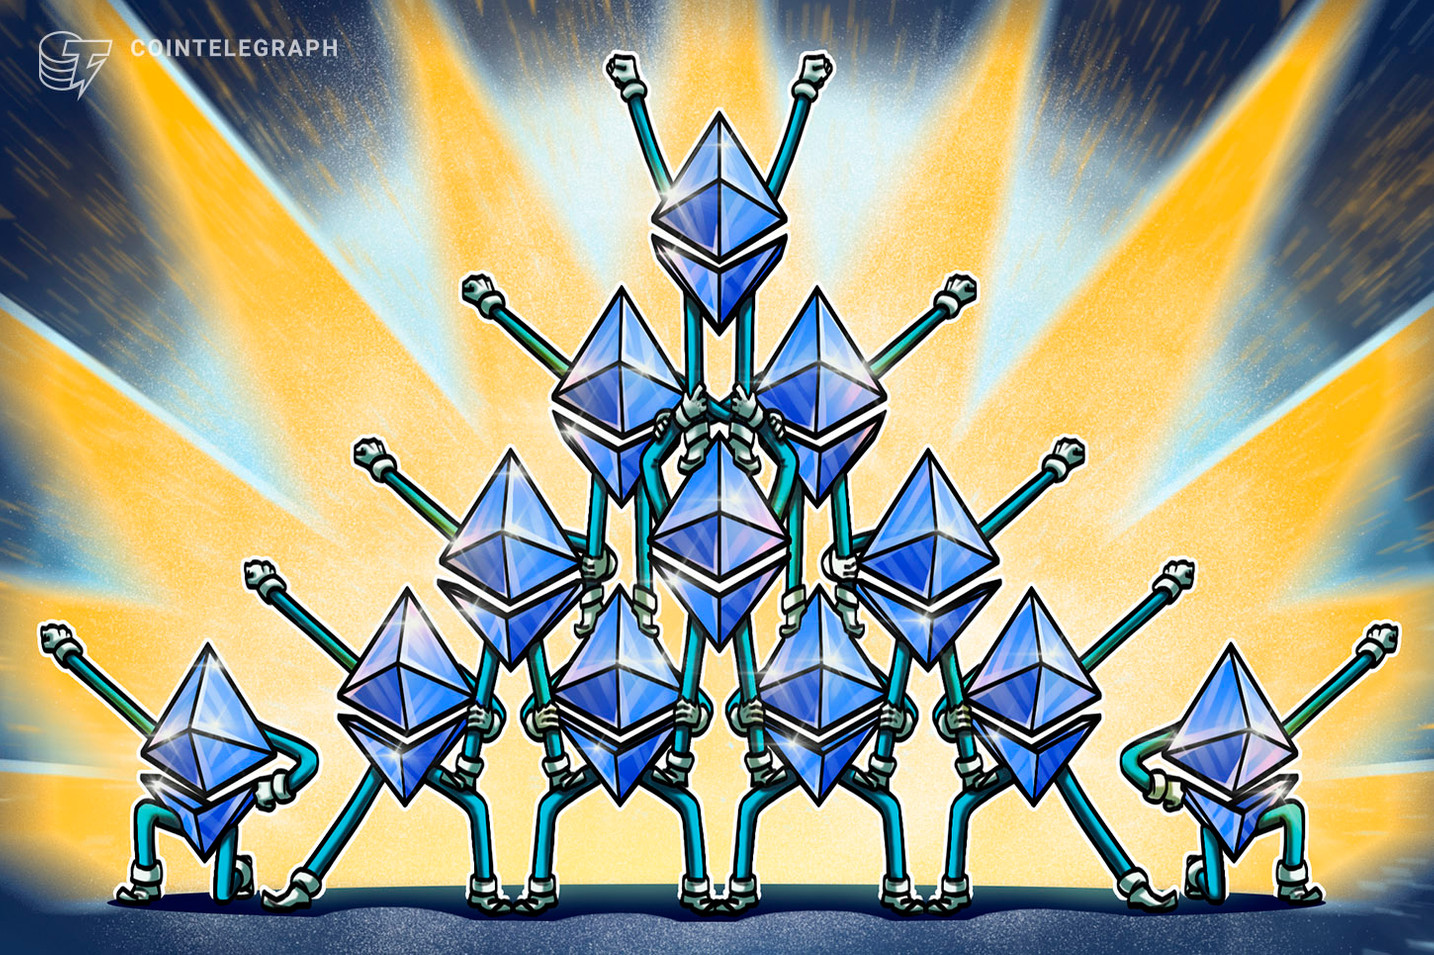 ETH breaks all-time high amid fresh price surge